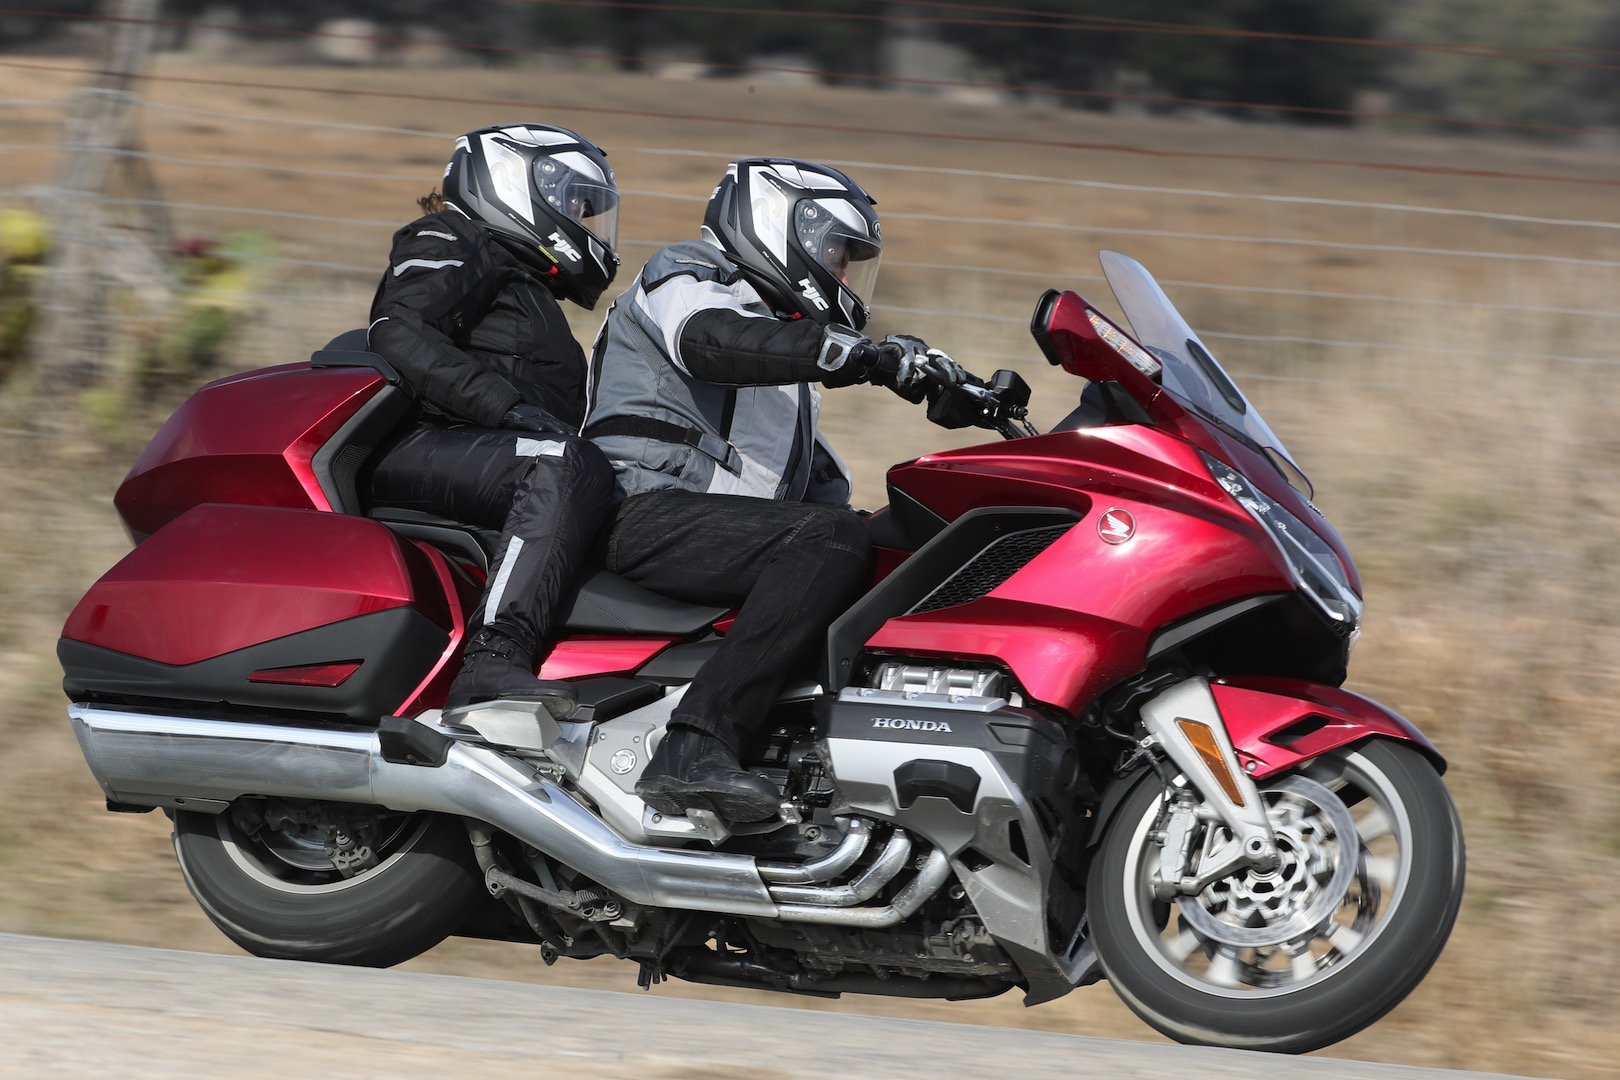 2018 Honda Gold Wing Tour DCT Review heated grips